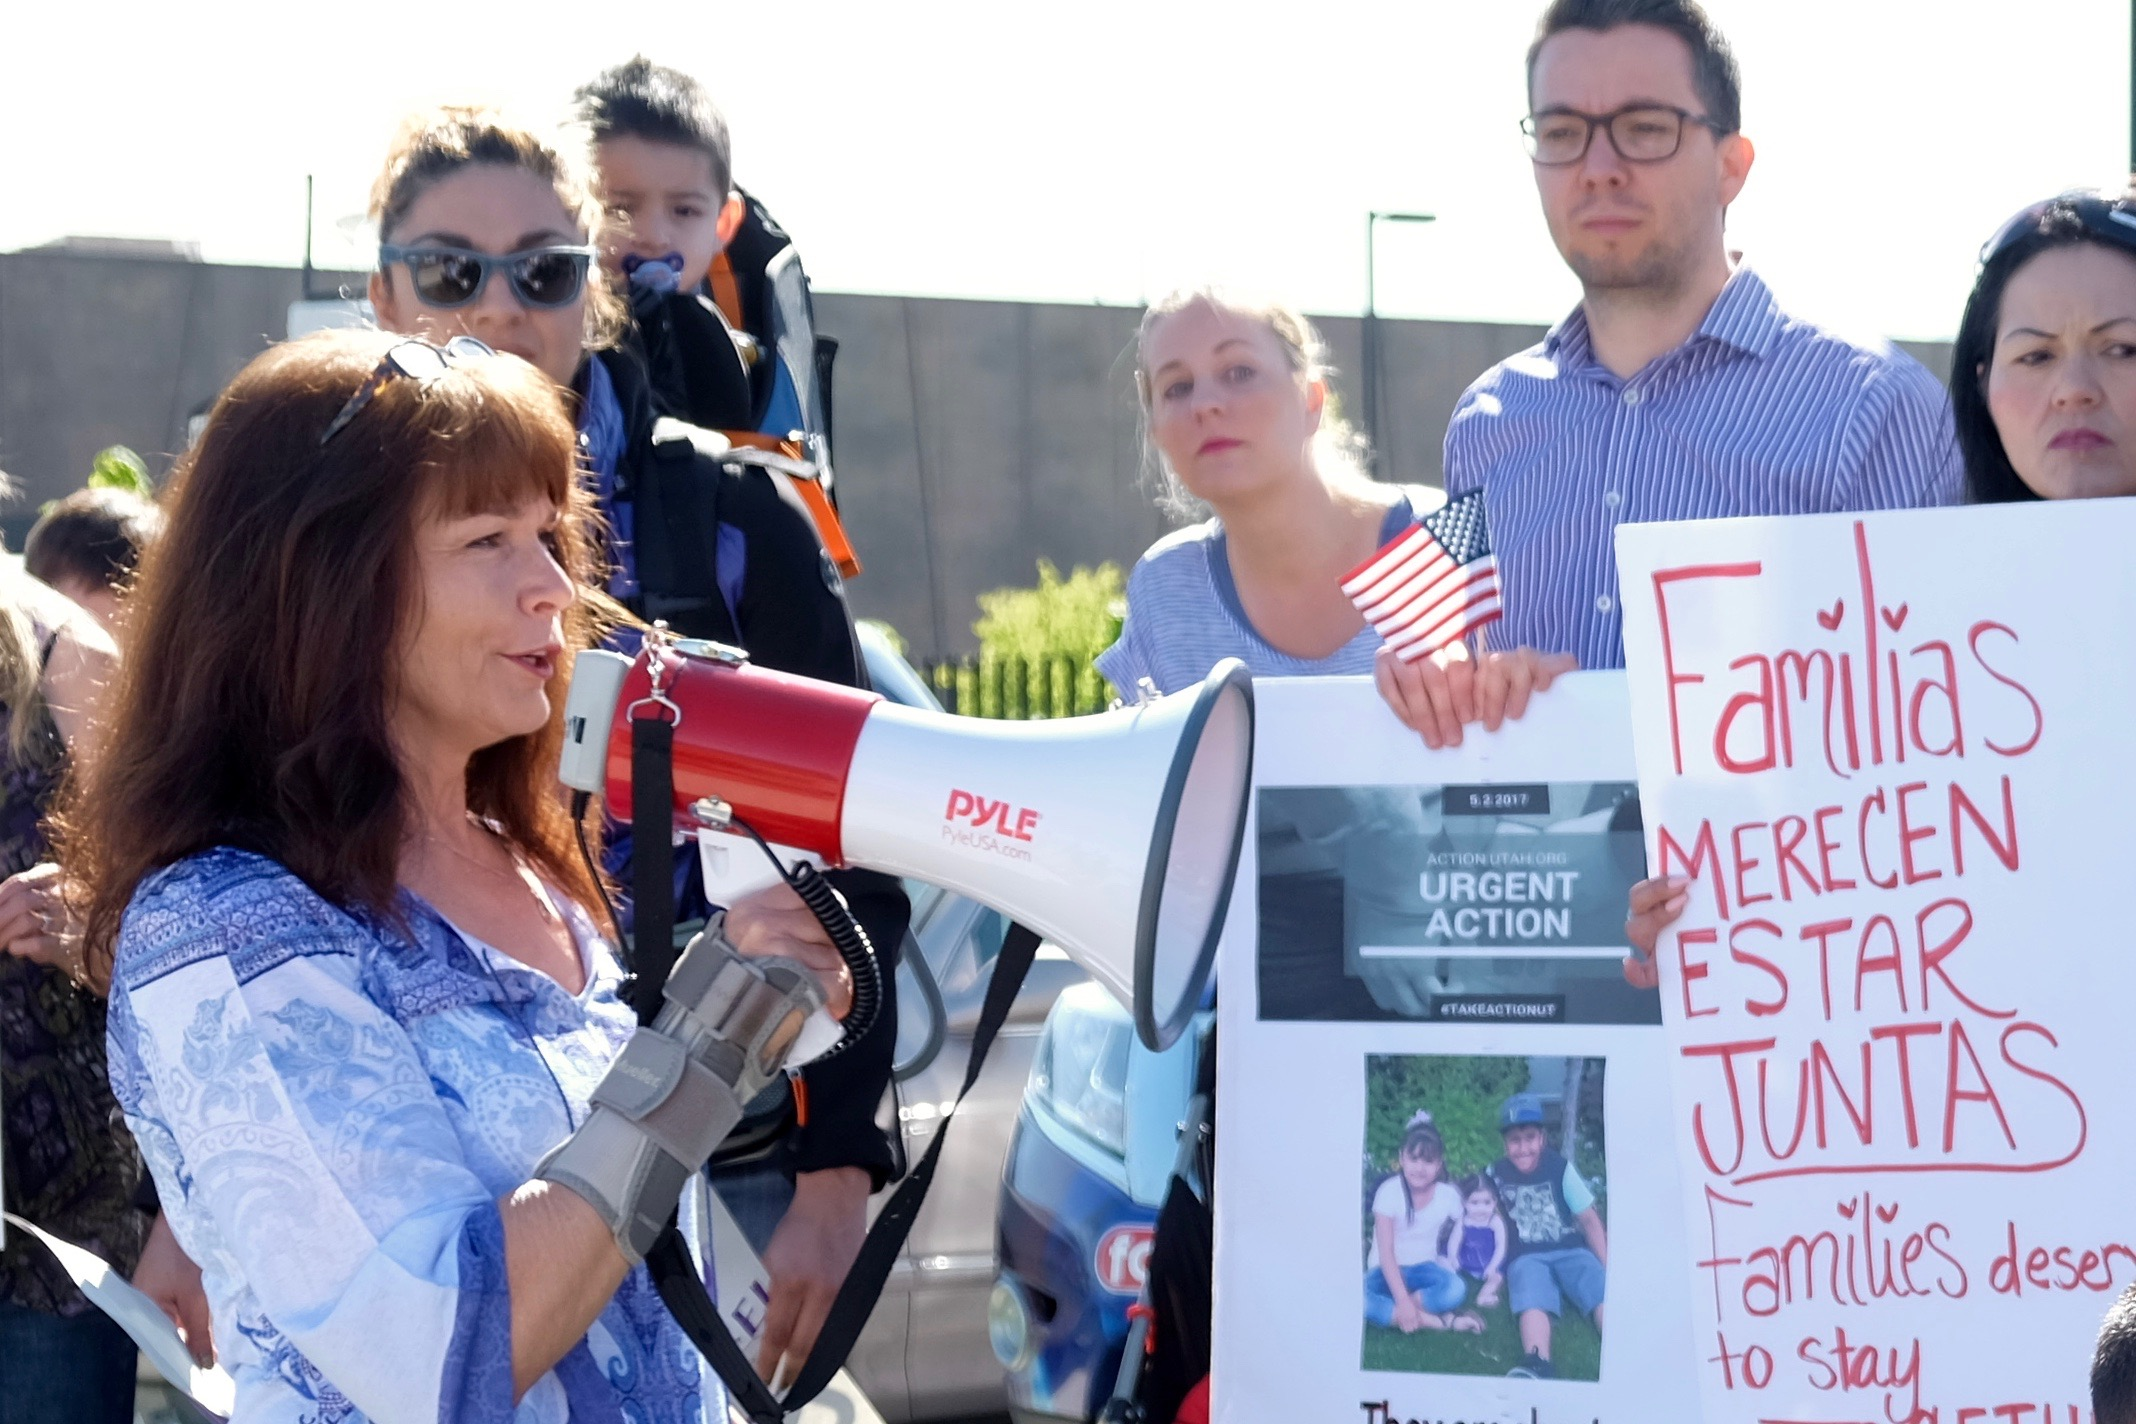 Sharlee Mullins Glenn, a founder of Mormon Women for Ethical Government, speaks to the press and a crowd of demonstrators in West Valley City, Utah. (May 3, 2017)